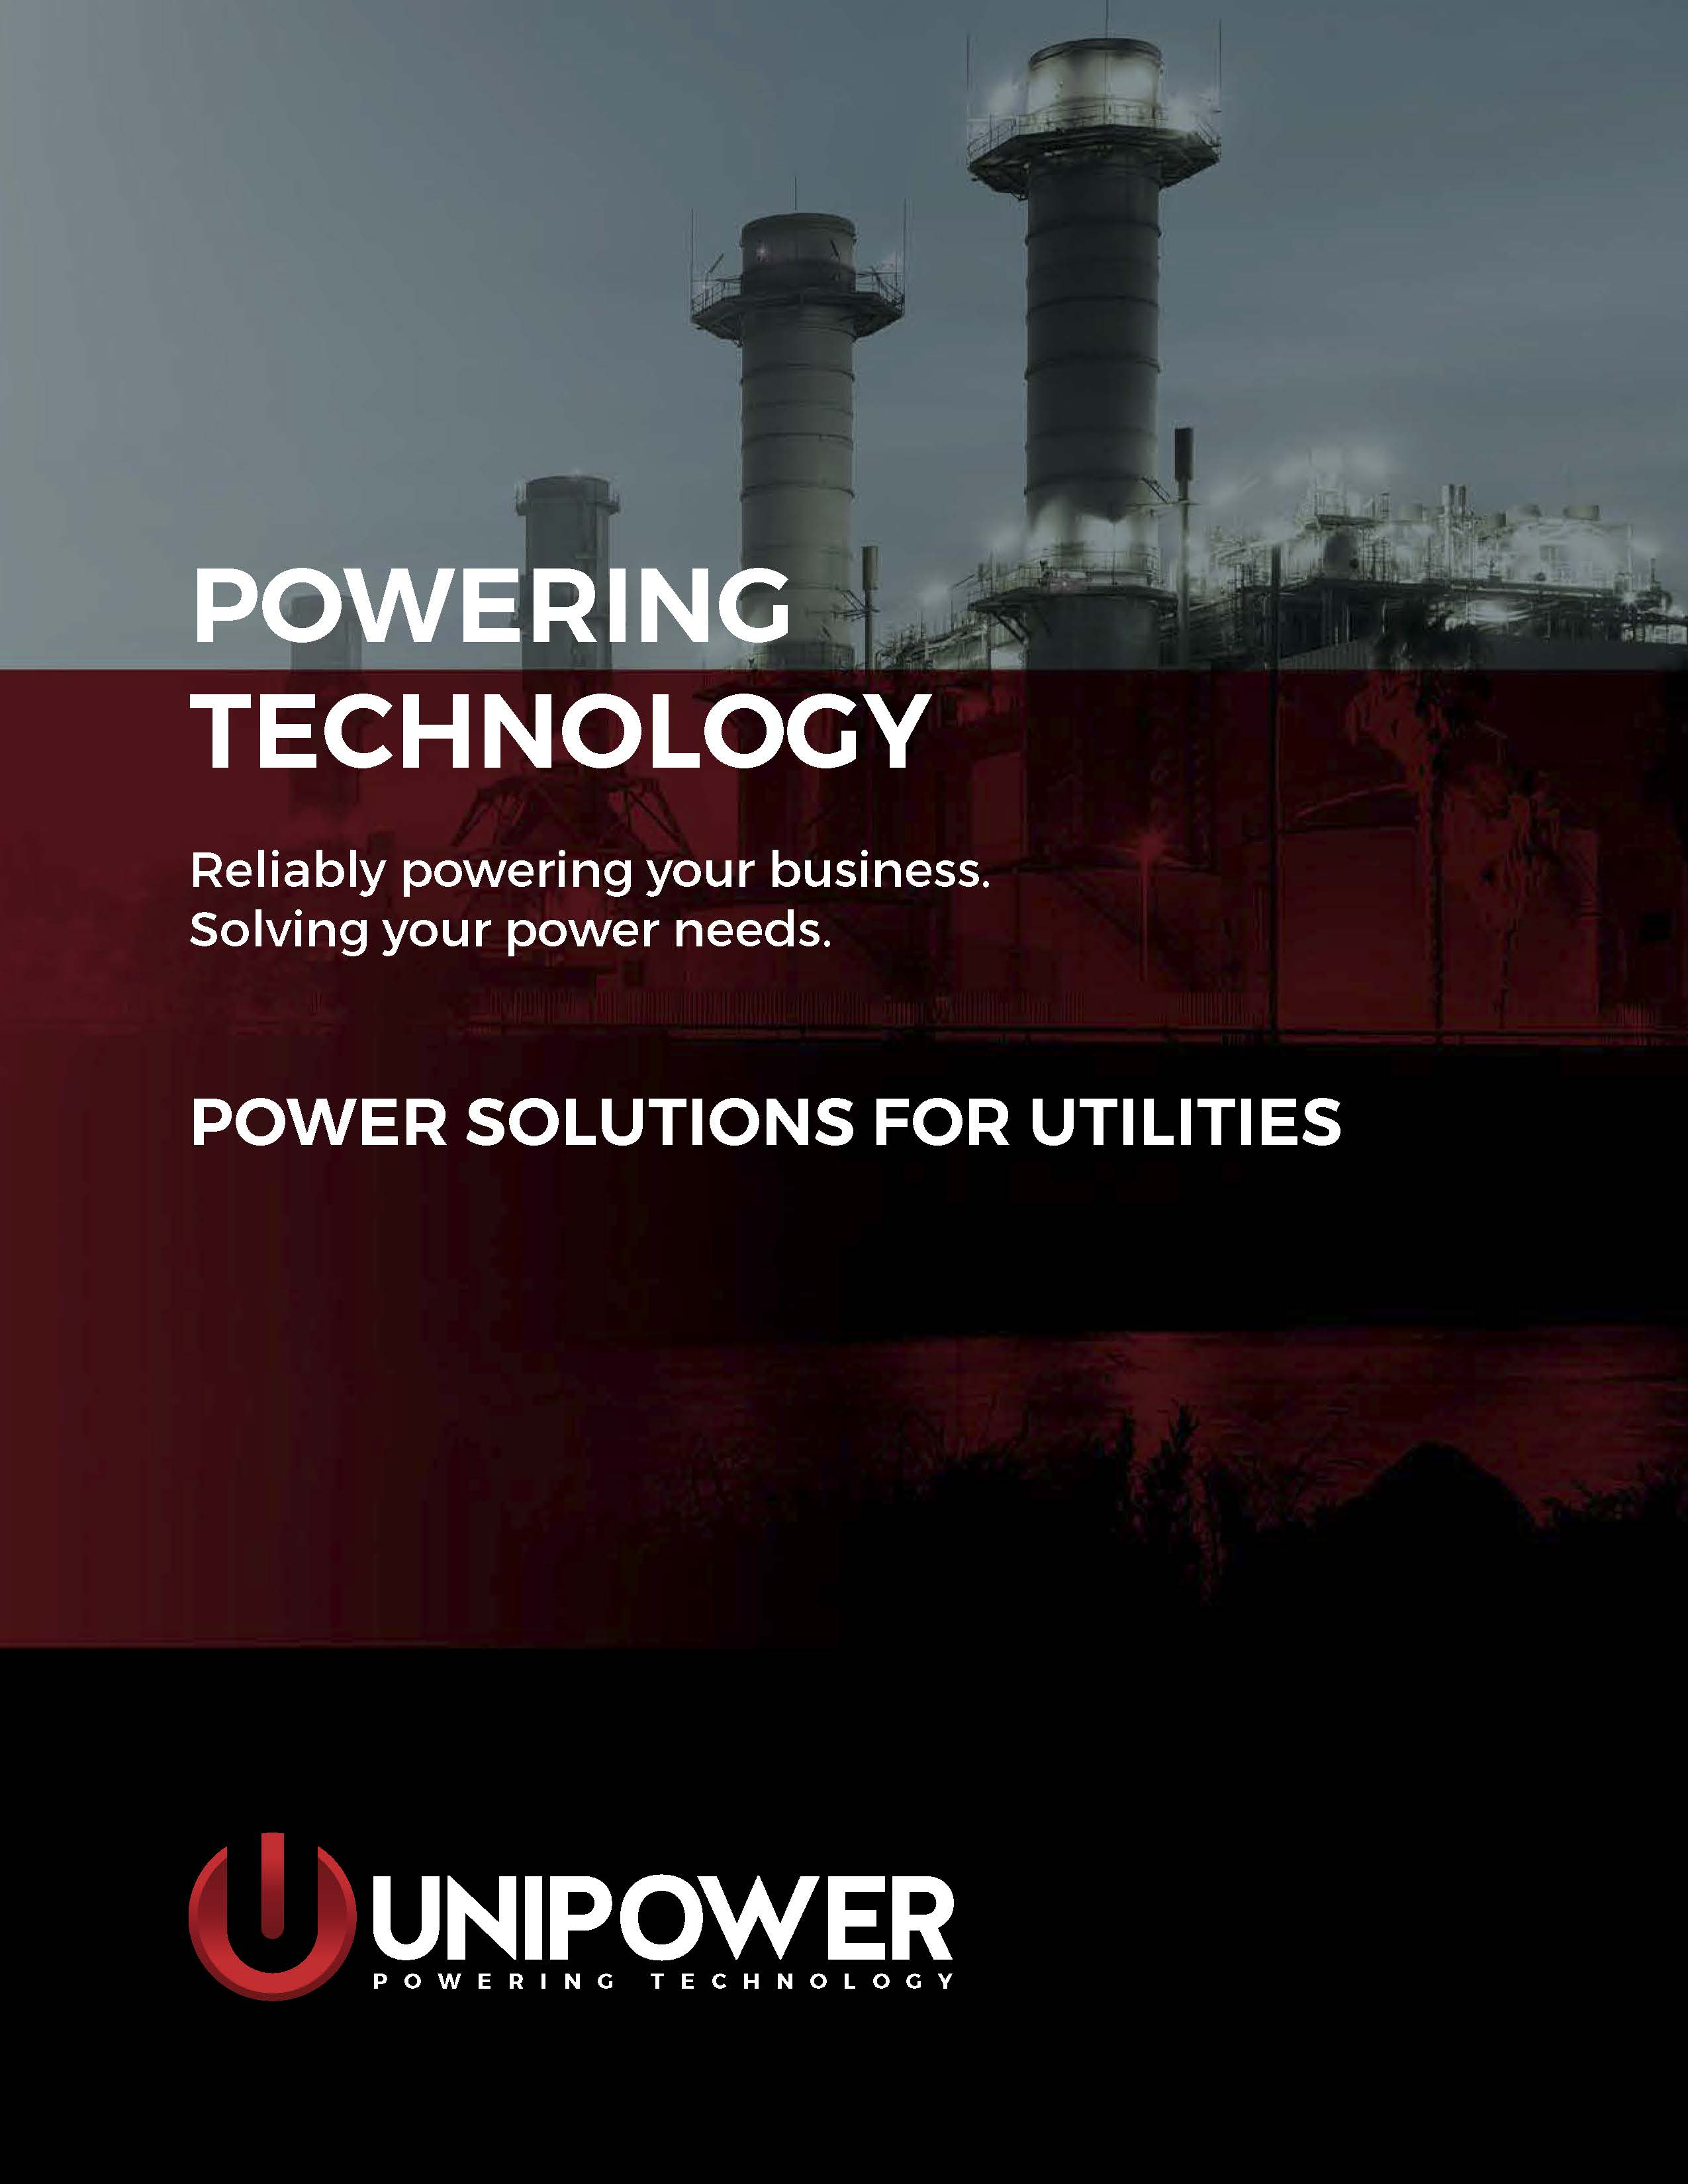 utilities products